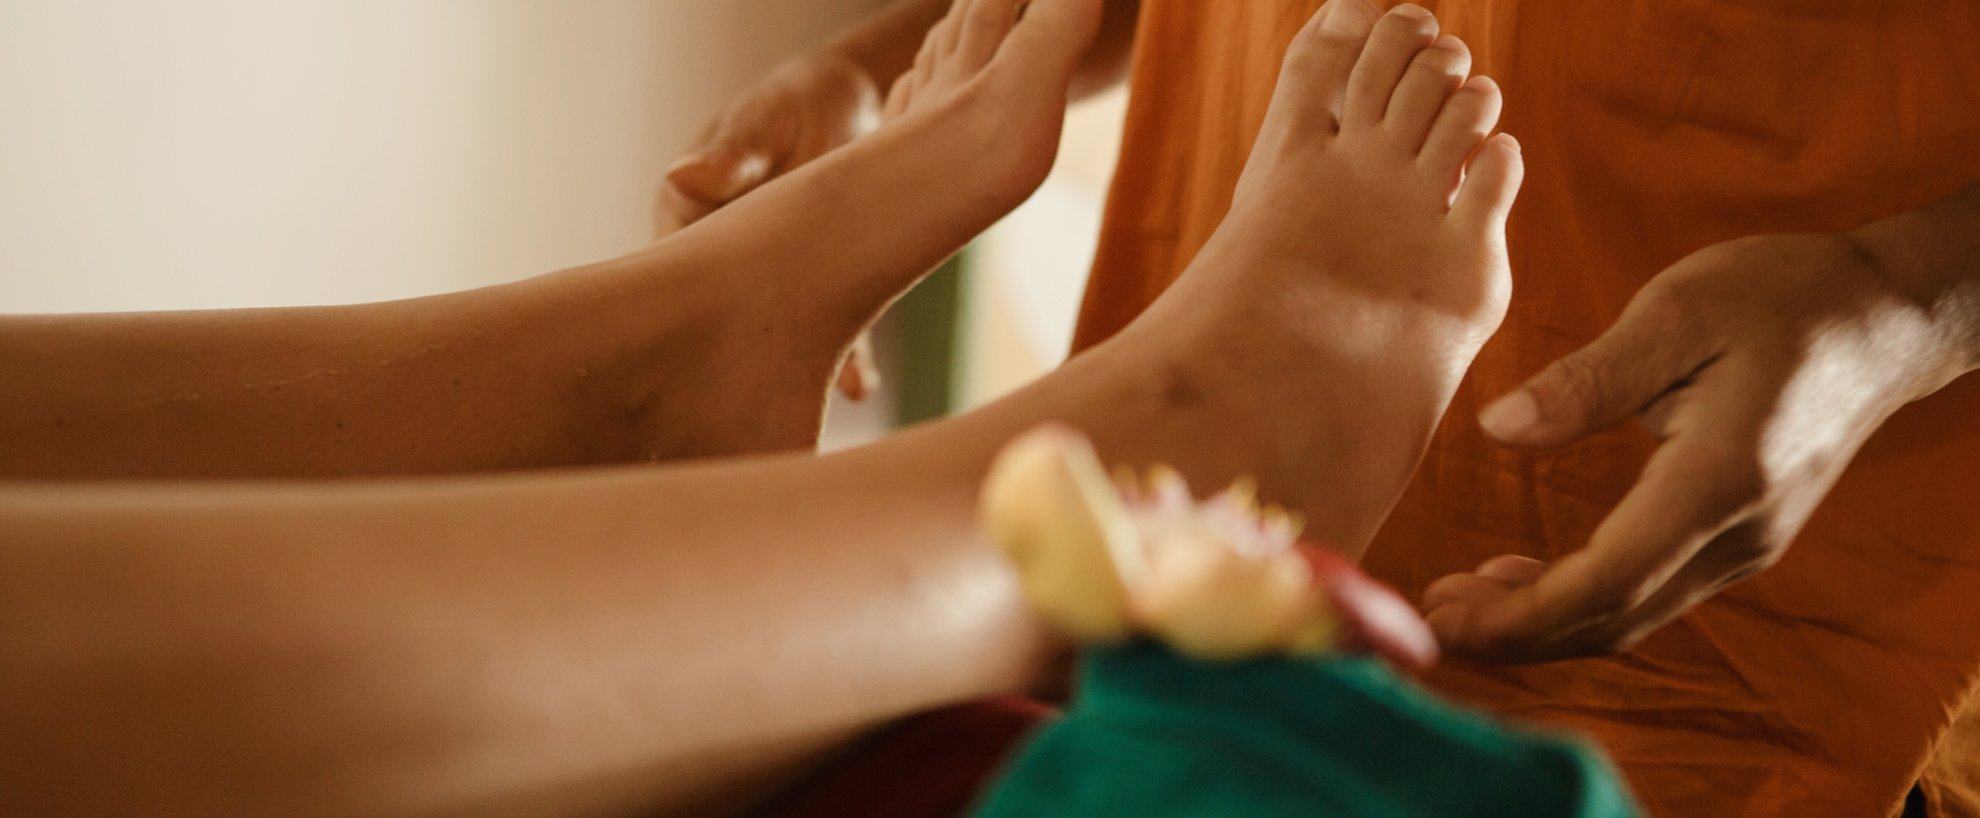 Sri Lanka Thaulle Resort Ayurveda Massage Fuß